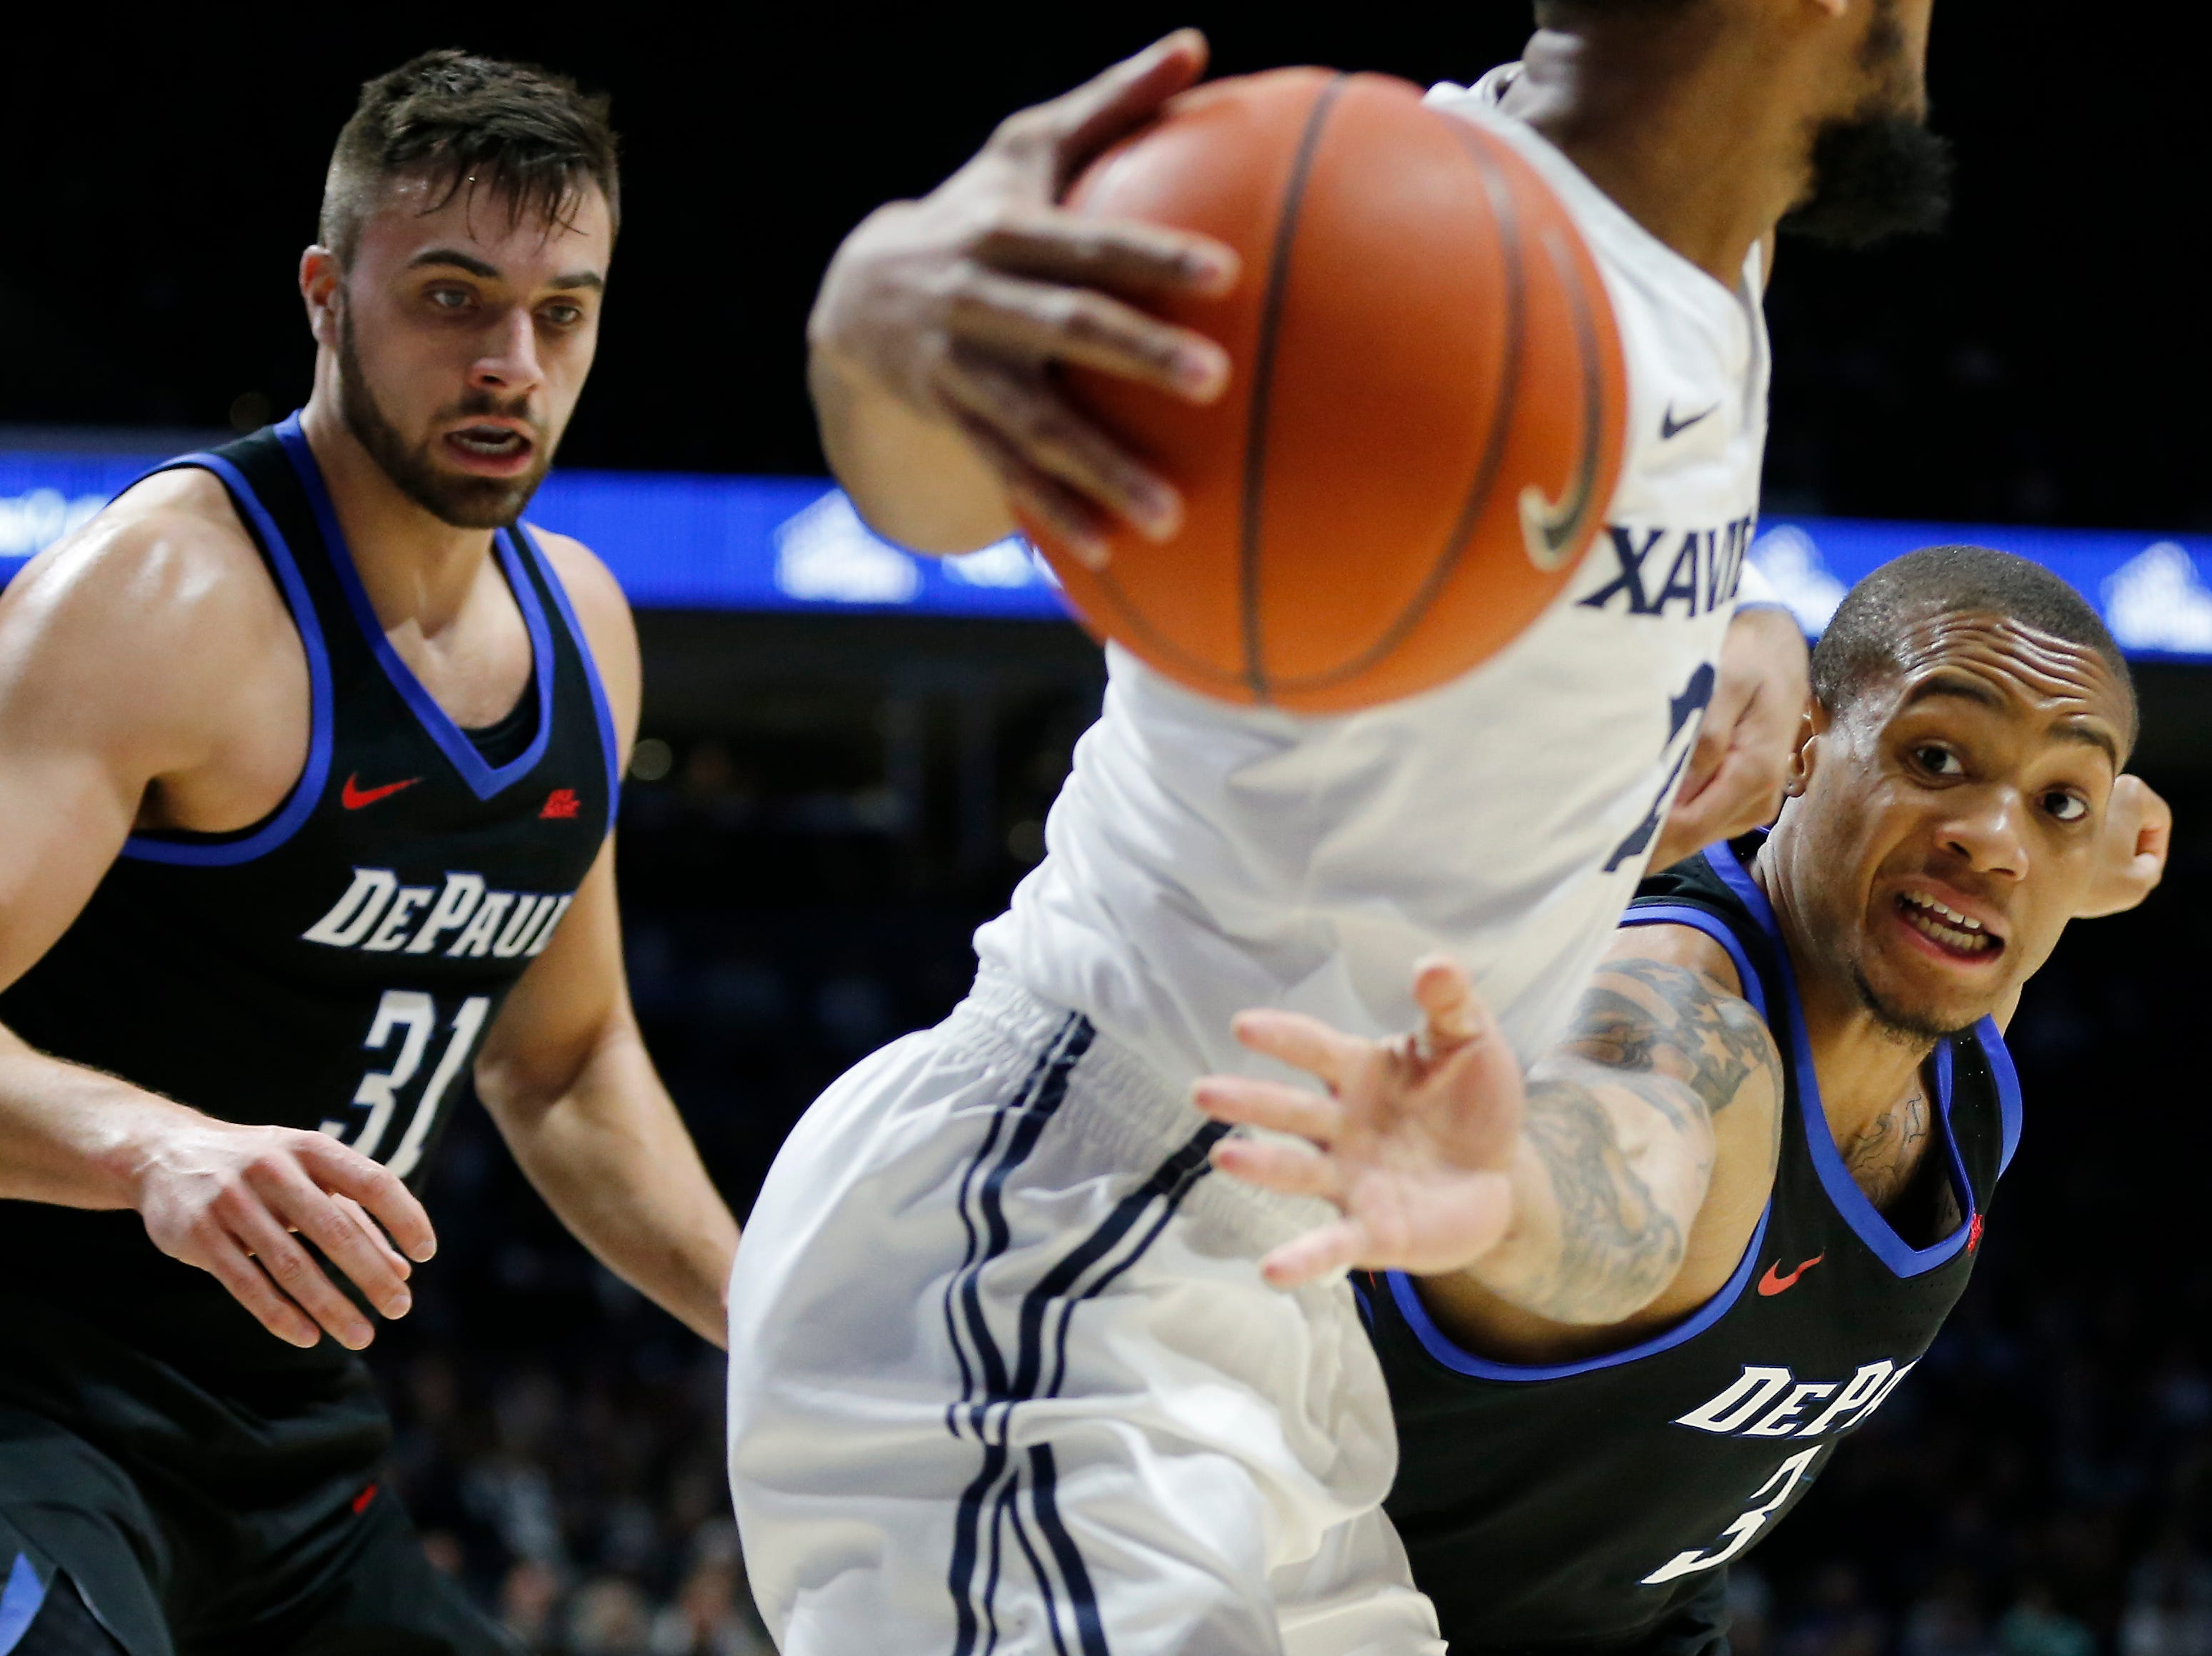 DePaul Blue Demons guard Devin Gage (3) reaches in on Xavier Musketeers guard Kyle Castlin (2) in the first half of the NCAA Big East Conference game between the Xavier Musketeers and the DePaul Blue Demons at the Cintas Center in Cincinnati on Saturday, Feb. 9, 2019.